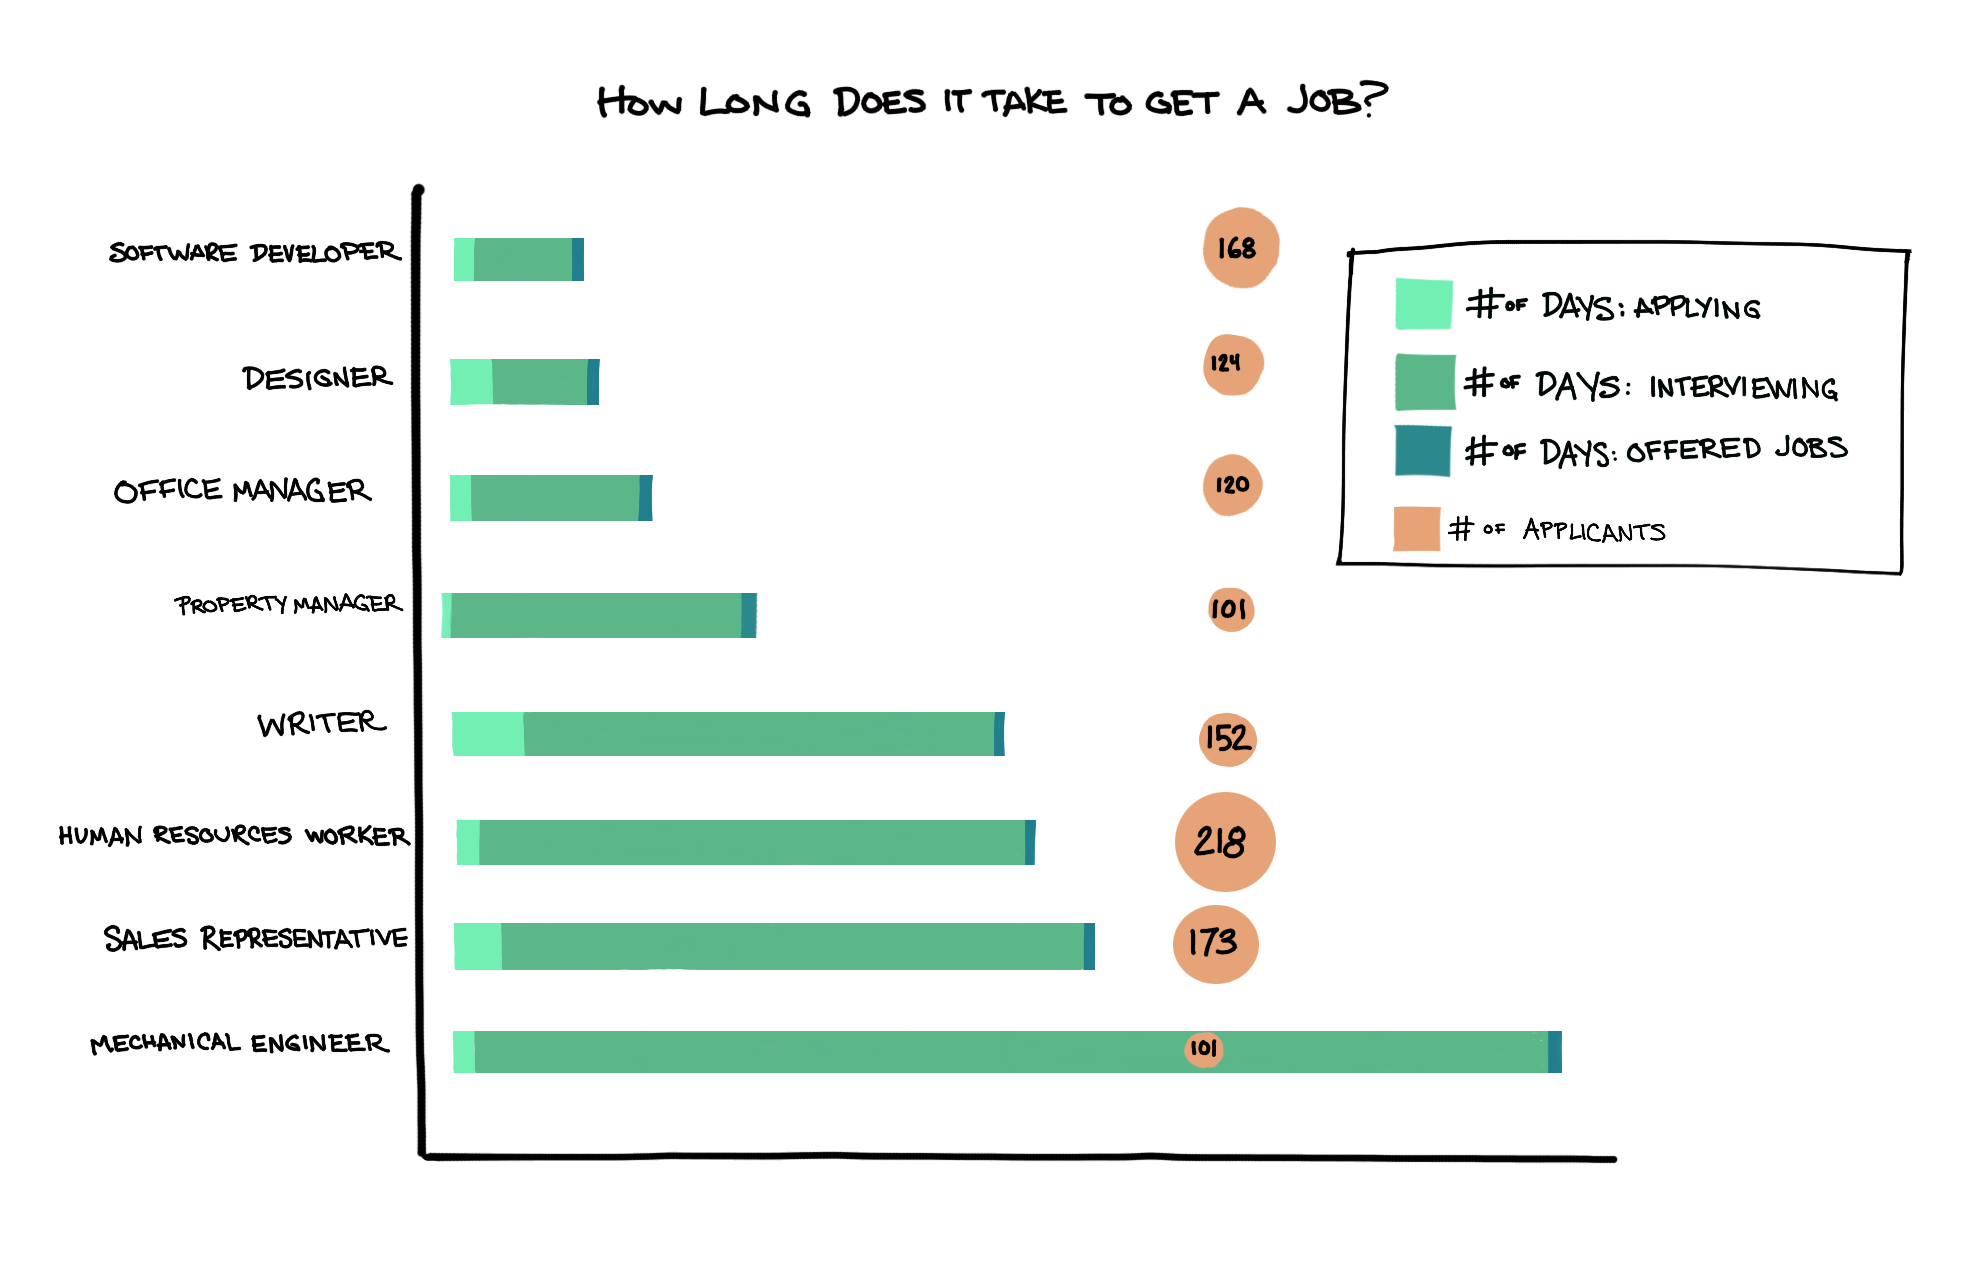 Unemployment rate and job search length by type of job